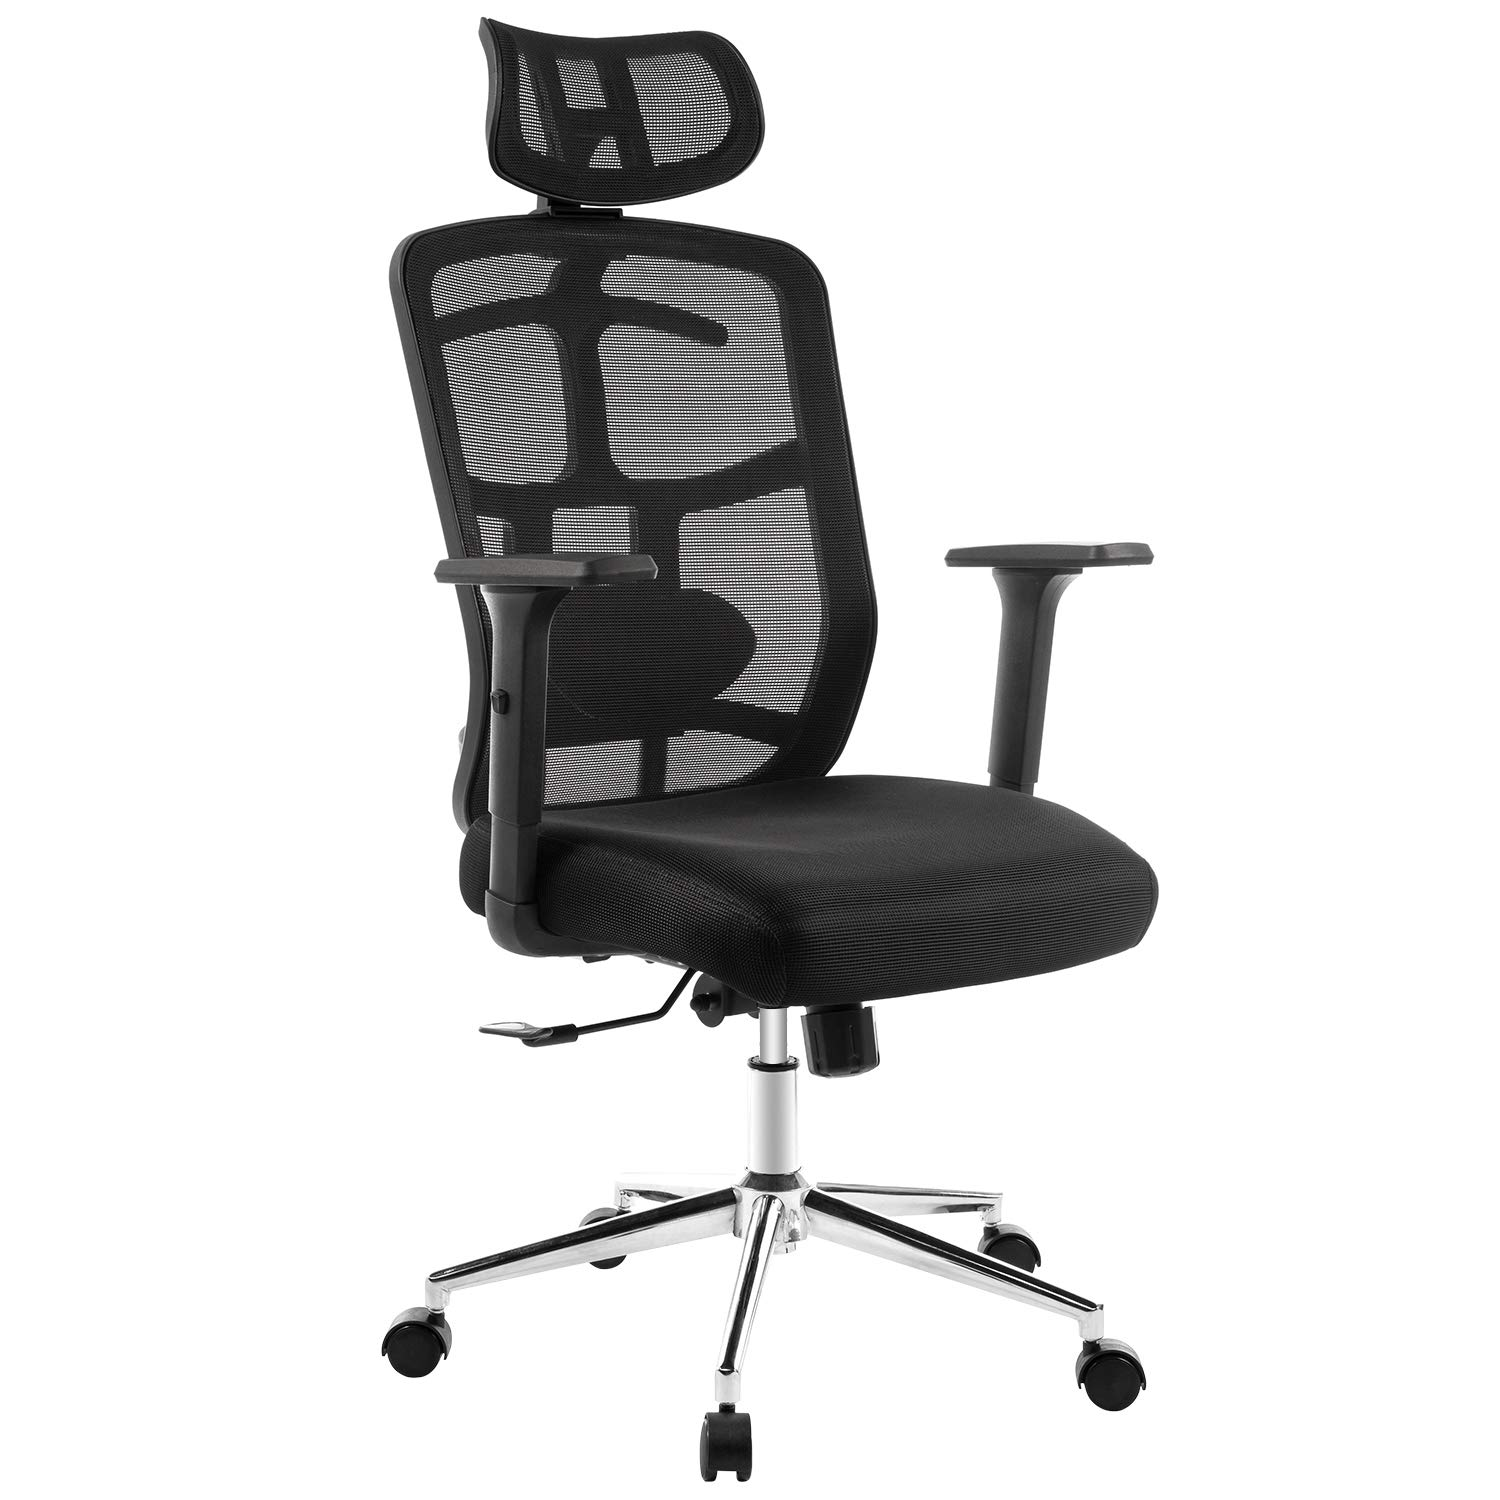 TOPSKY Mesh Computer Office Chair Ergonomic Design Chair Skeletal Back 3D Armrest Synchronous MechanismHanger Function(Black)